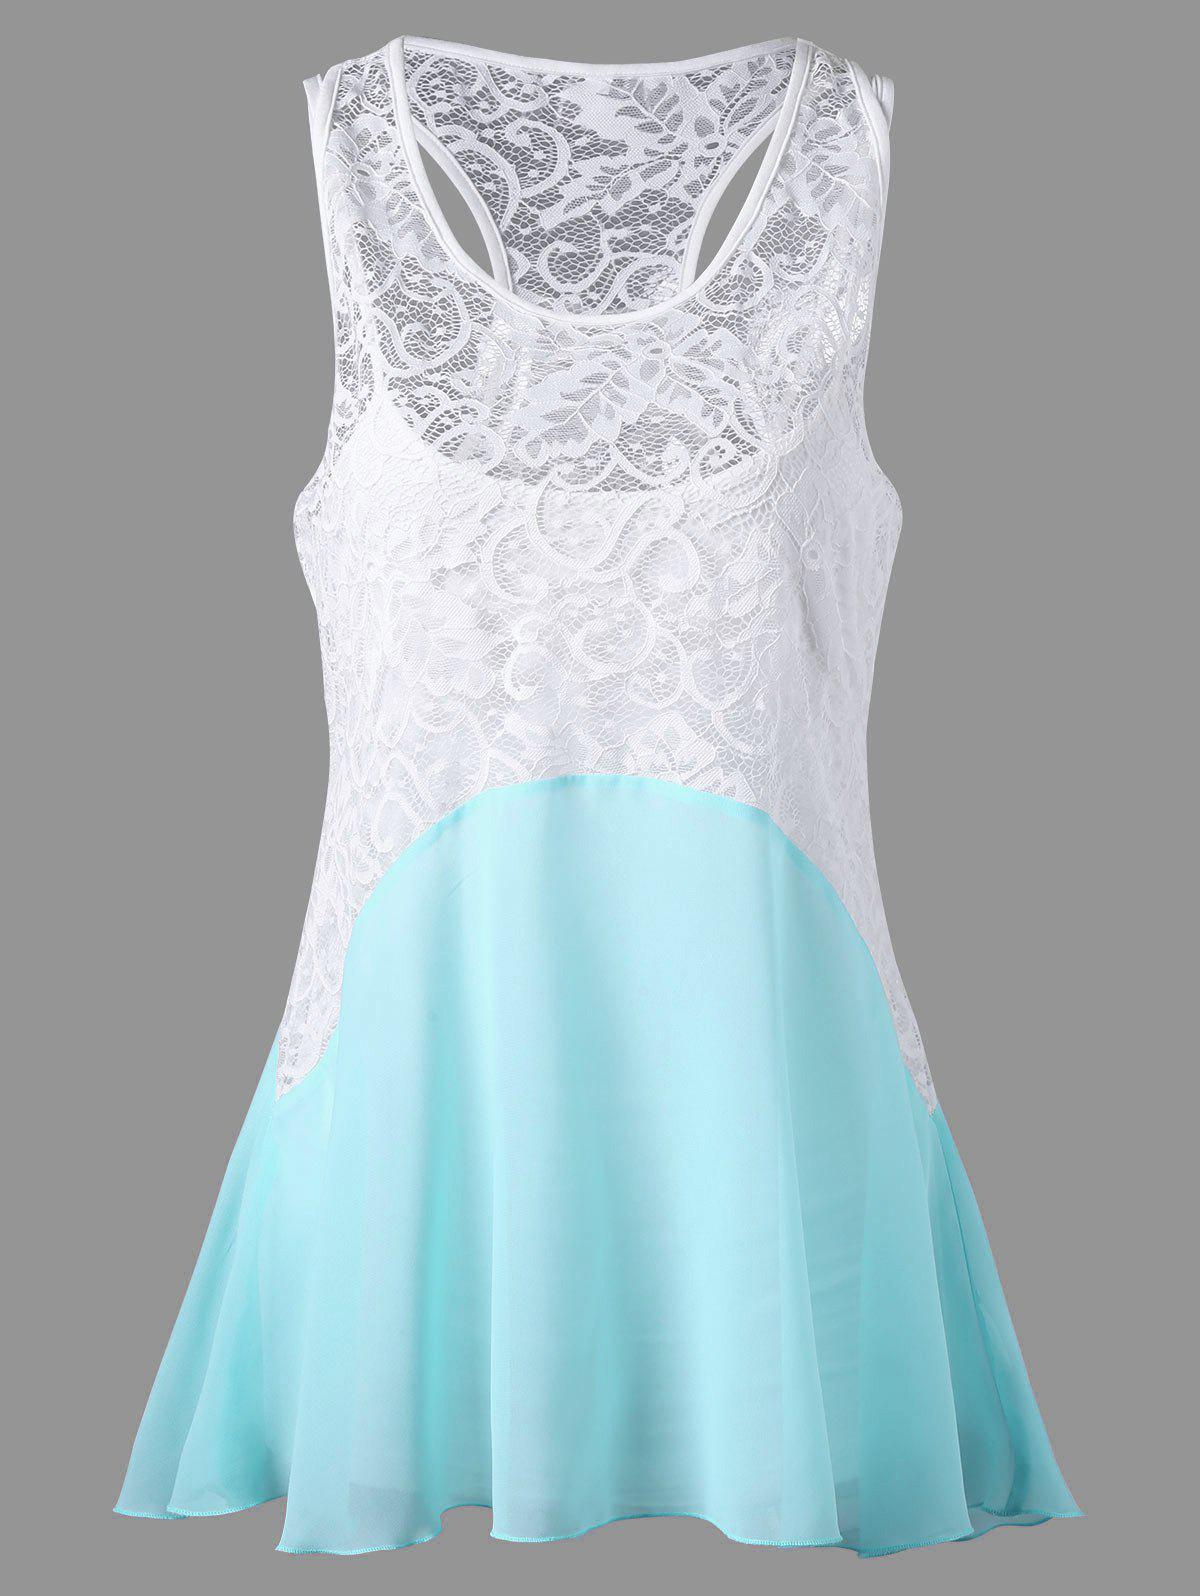 Lace Trim Sleeveless Dressy Blouse with Camisole lace trim sleeveless dressy blouse with camisole